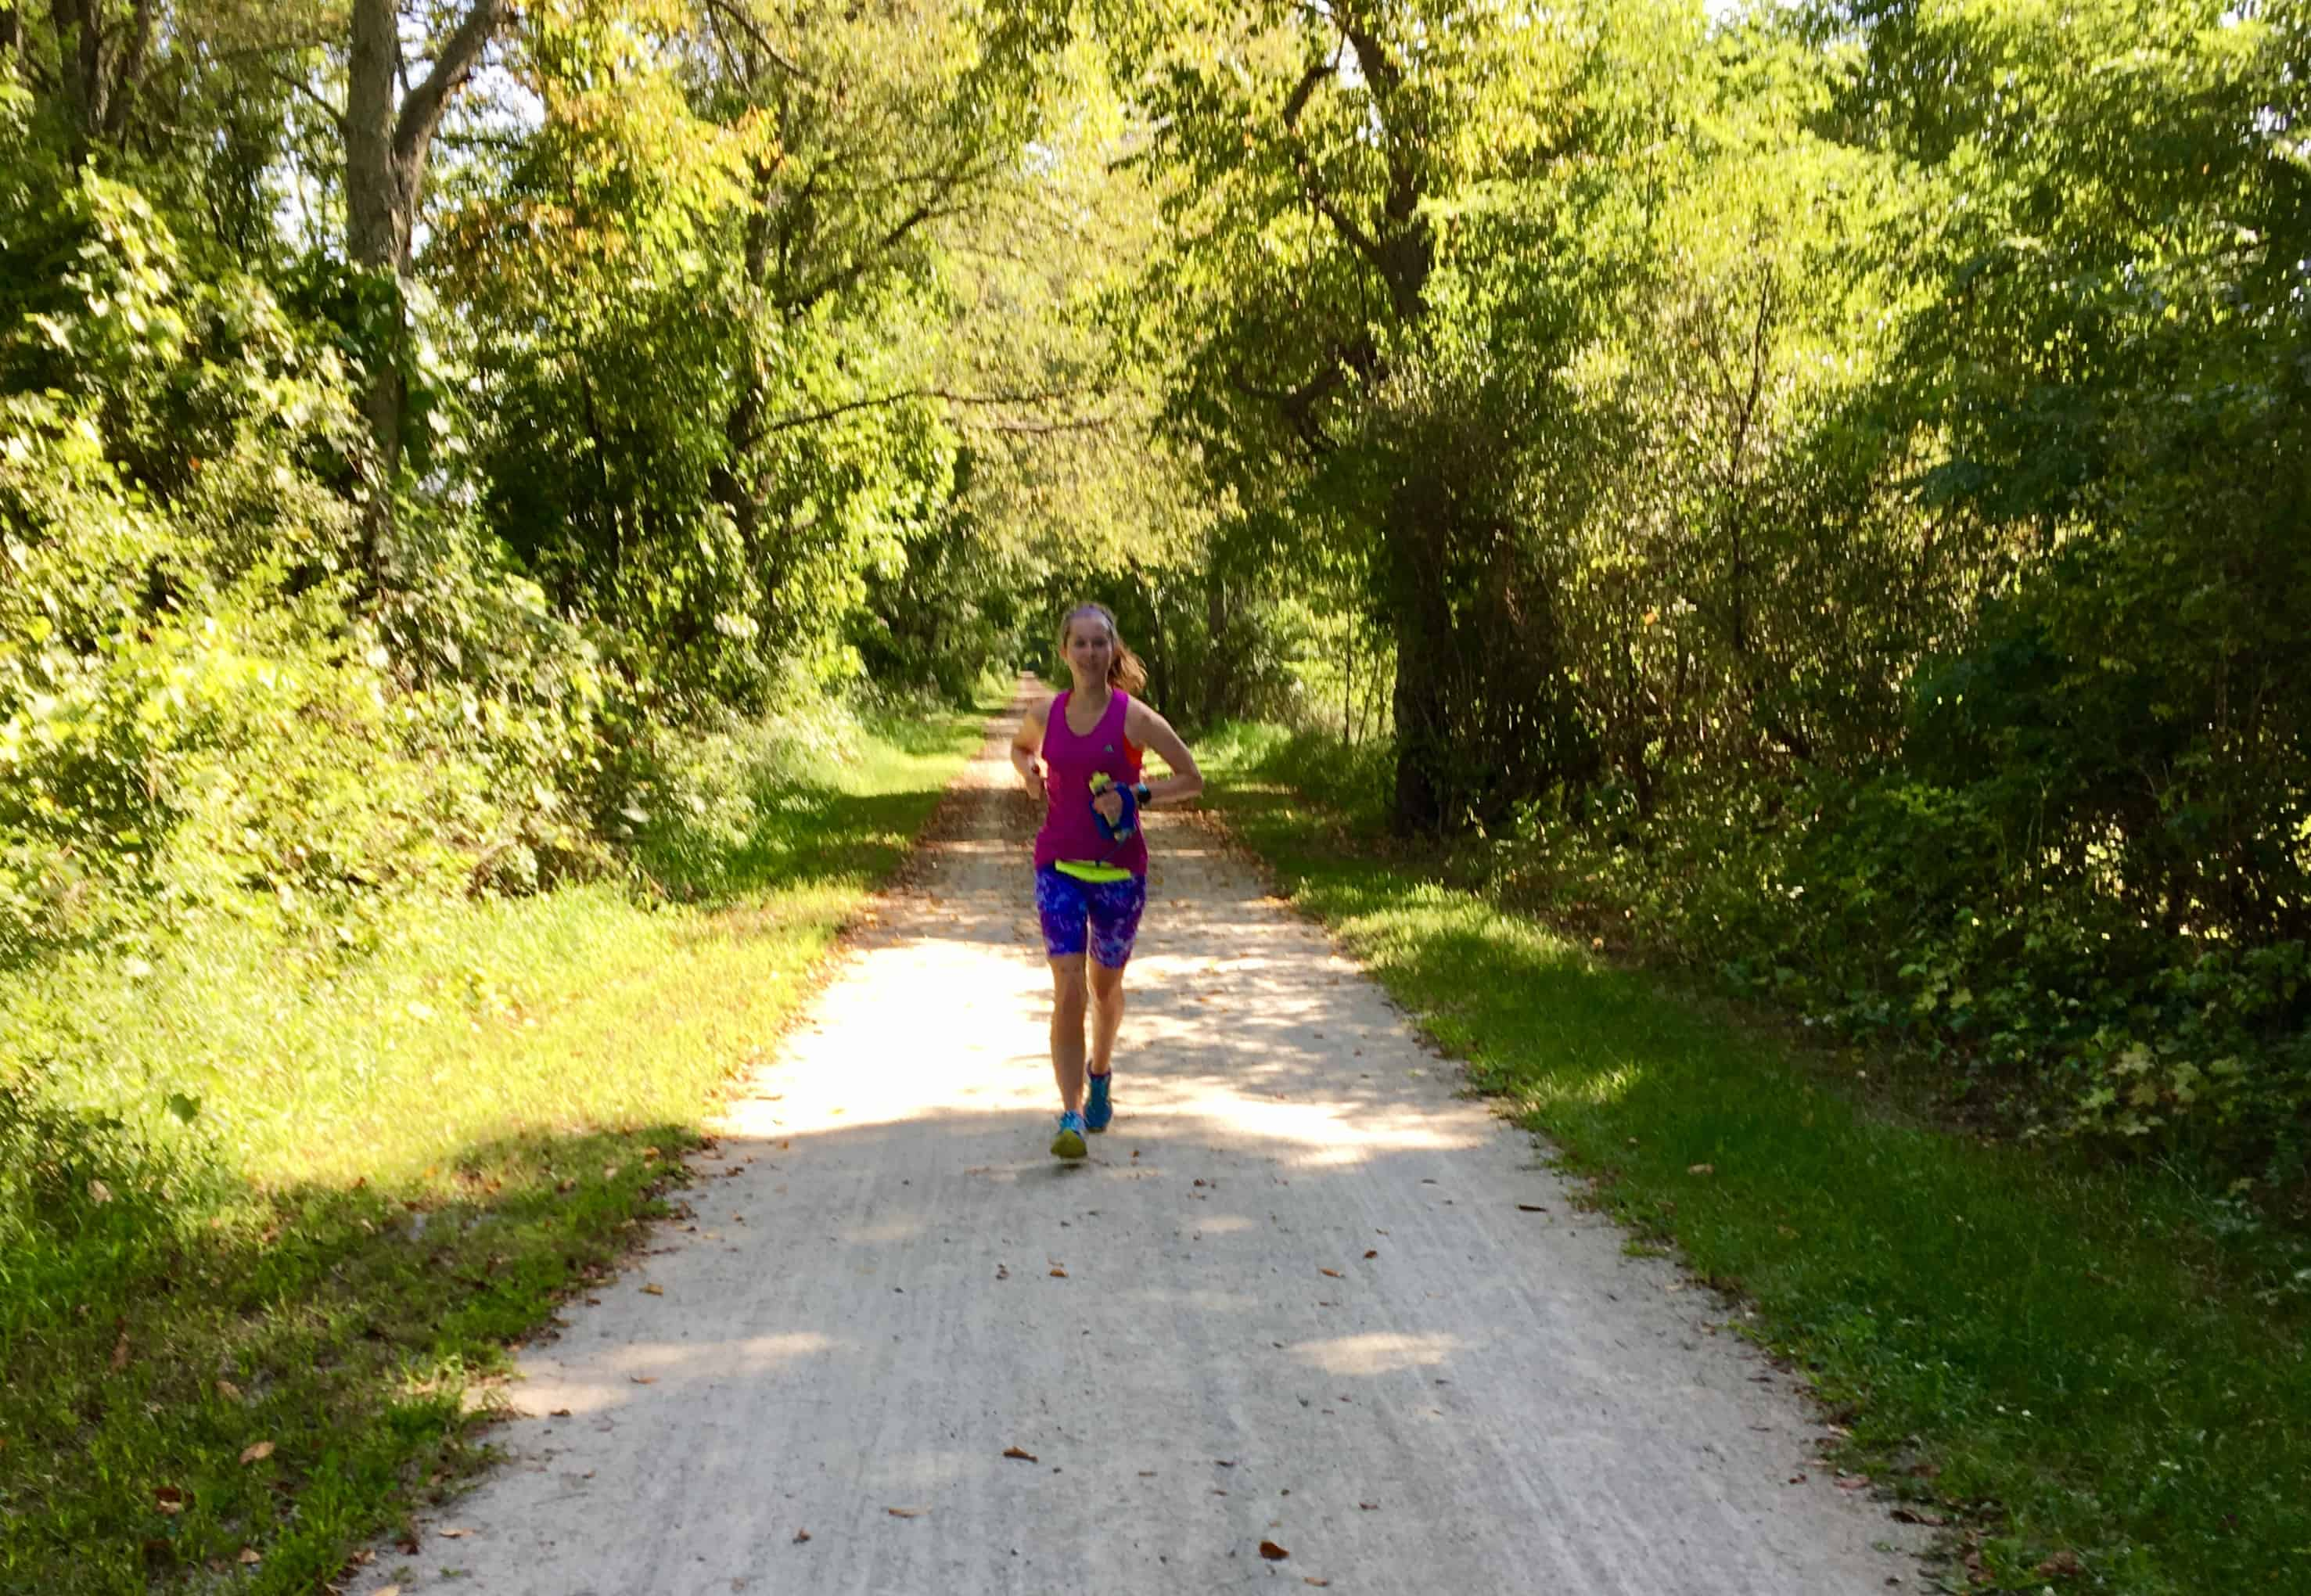 Have you ever wondered what the secret is to enjoying running? Even as a runner, I know I have. It turns out that the answer is simpler than we think. Changing my mental perspective has had a game changing affect on my running. Ever since refocusing my mental attitude, every run has felt wonderful and running has been a joy.